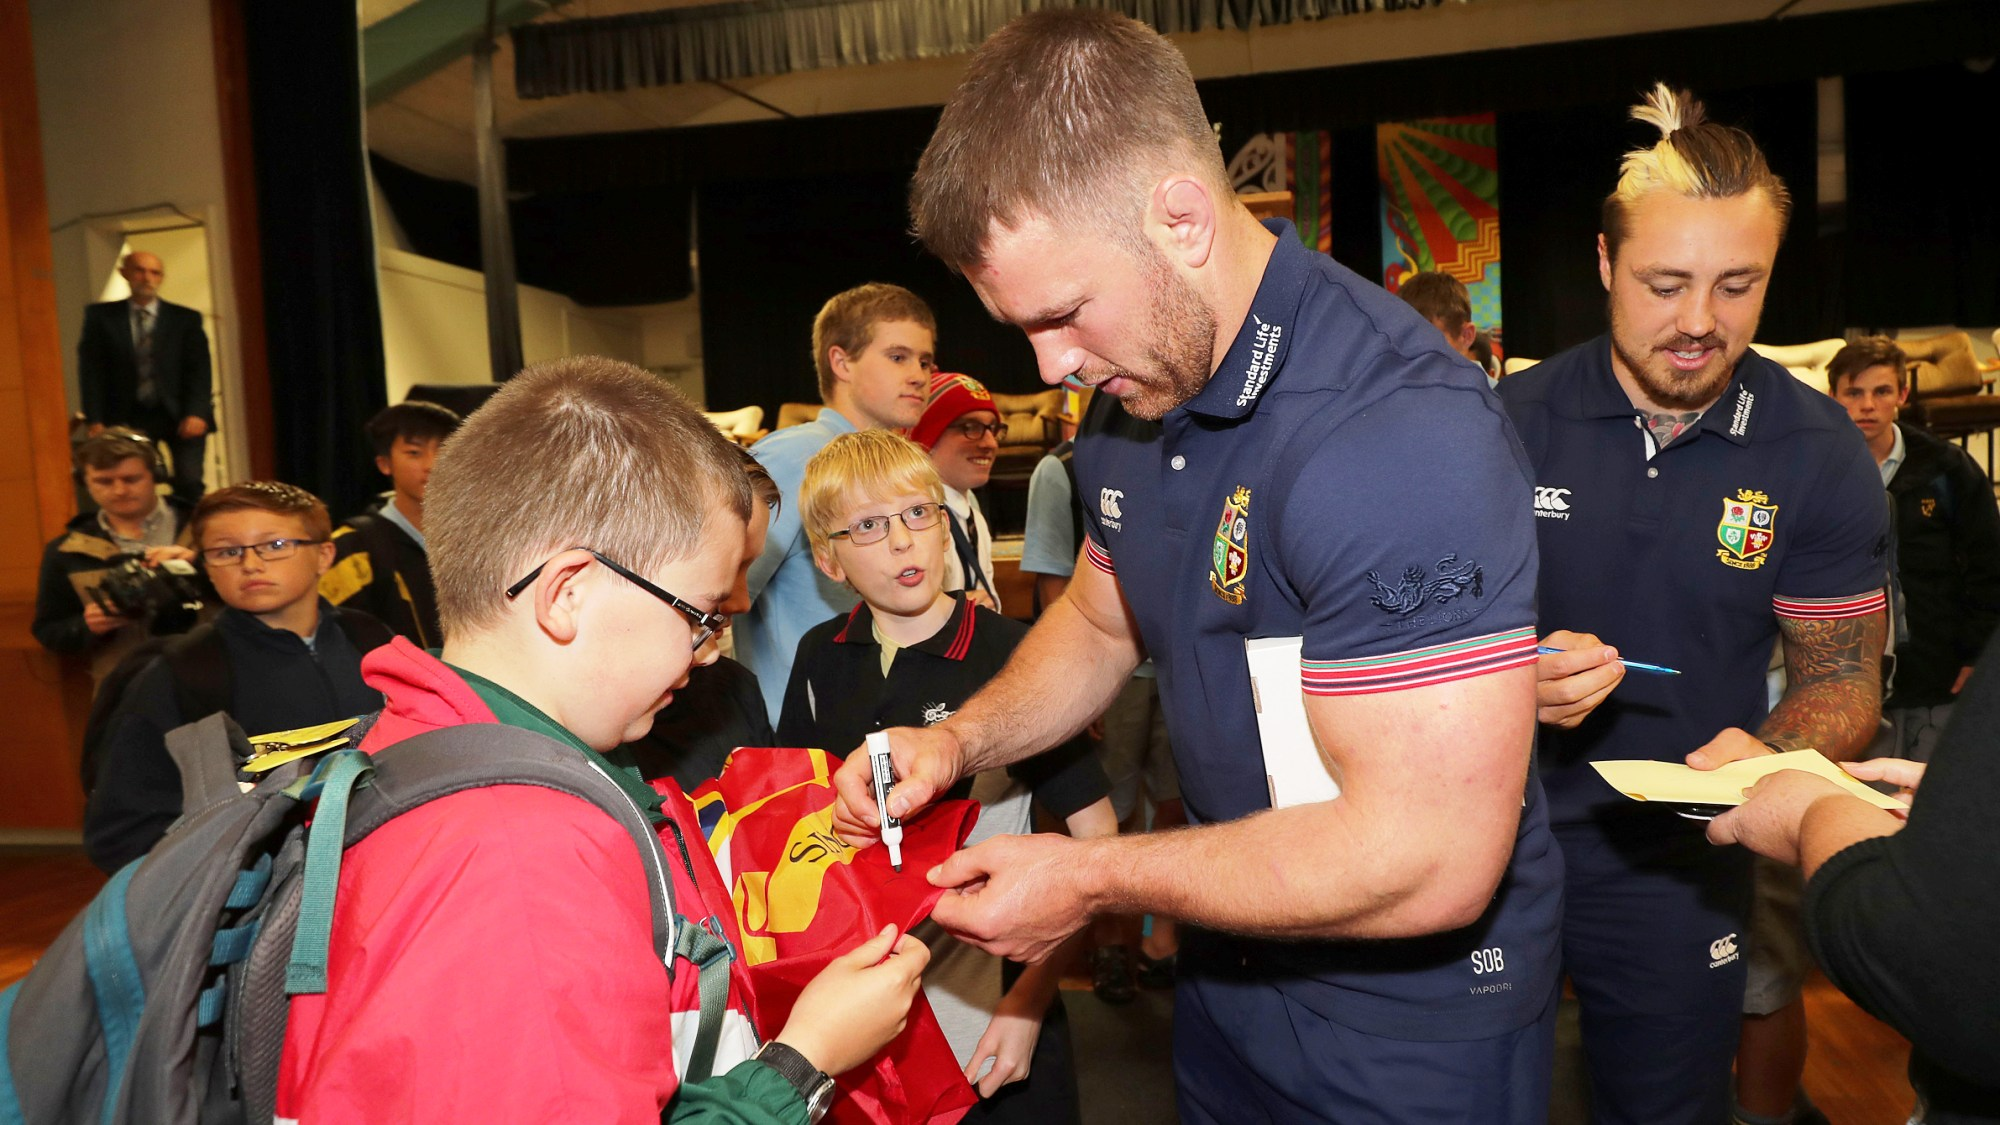 Best of social! The Lions visit communities in Auckland